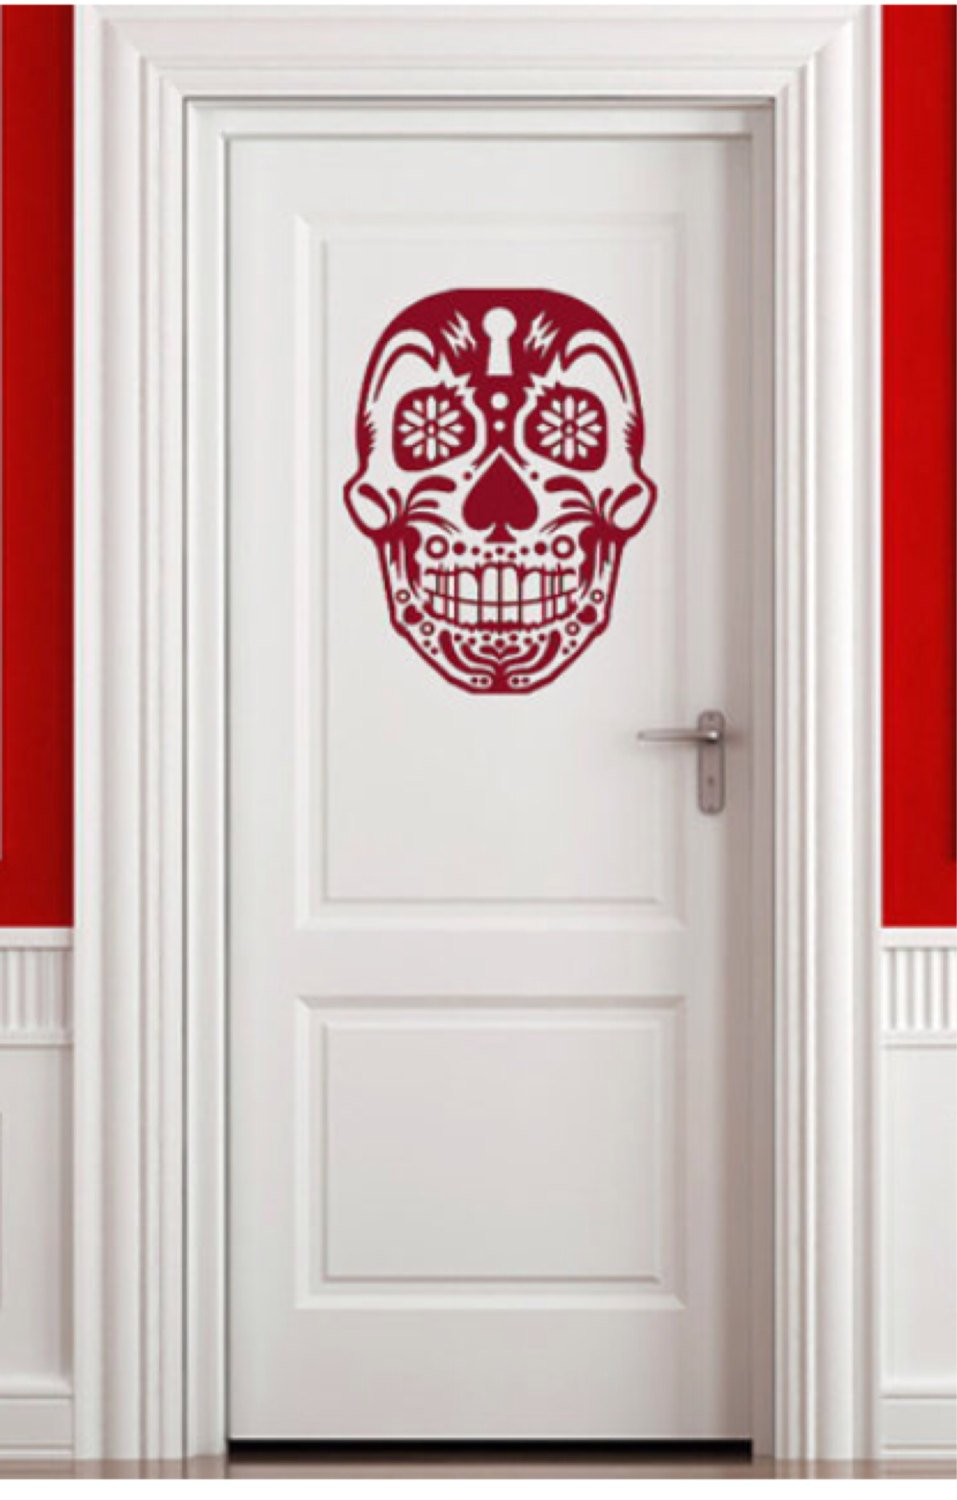 Day of the Dead Art Sugar Skull Decal - Pillbox Designs